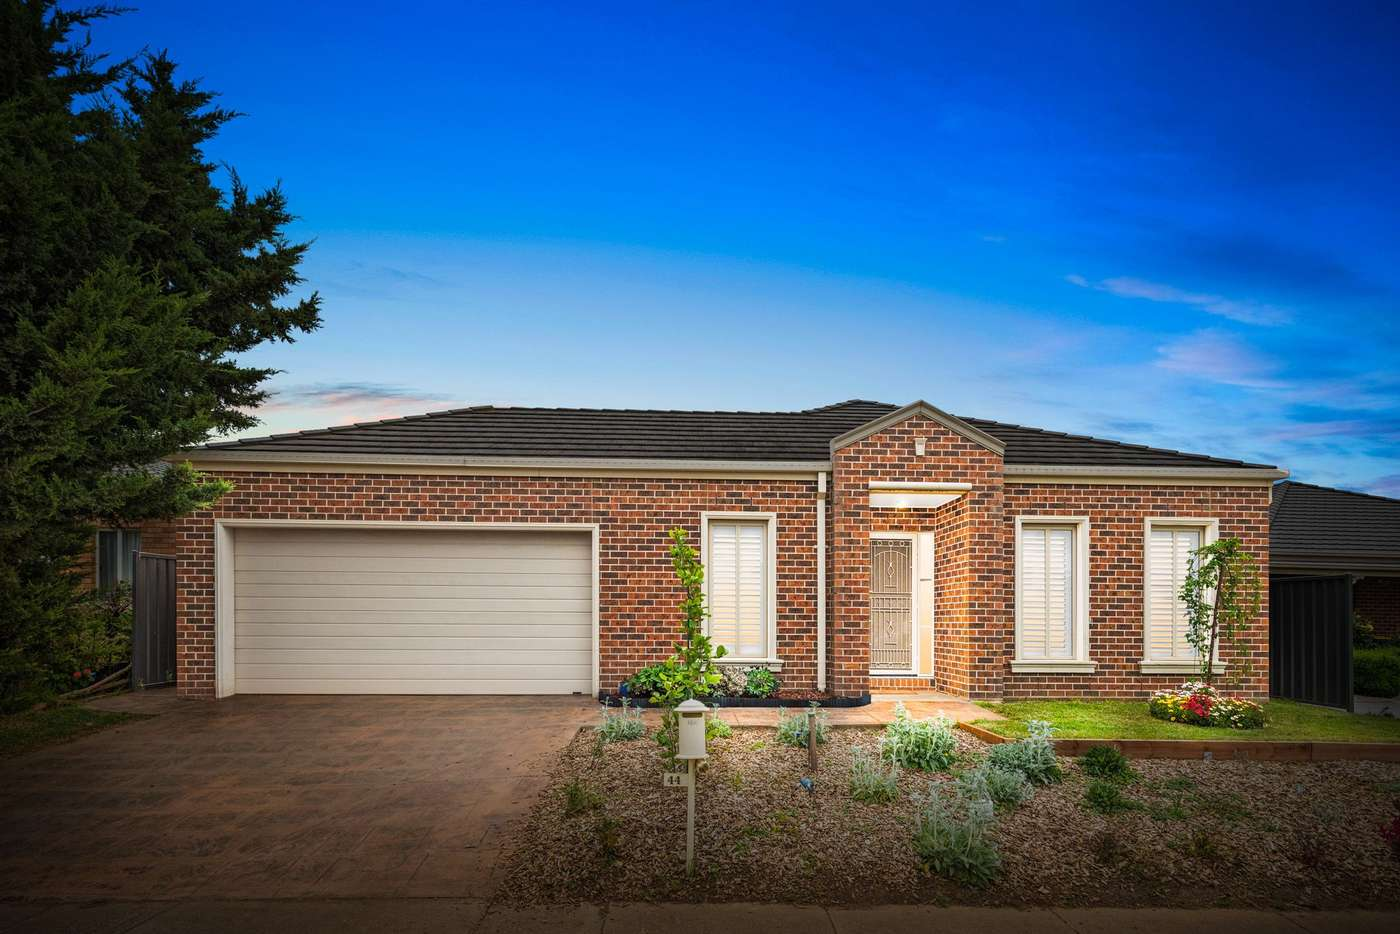 Main view of Homely house listing, 44 Eppalock Drive, Manor Lakes VIC 3024